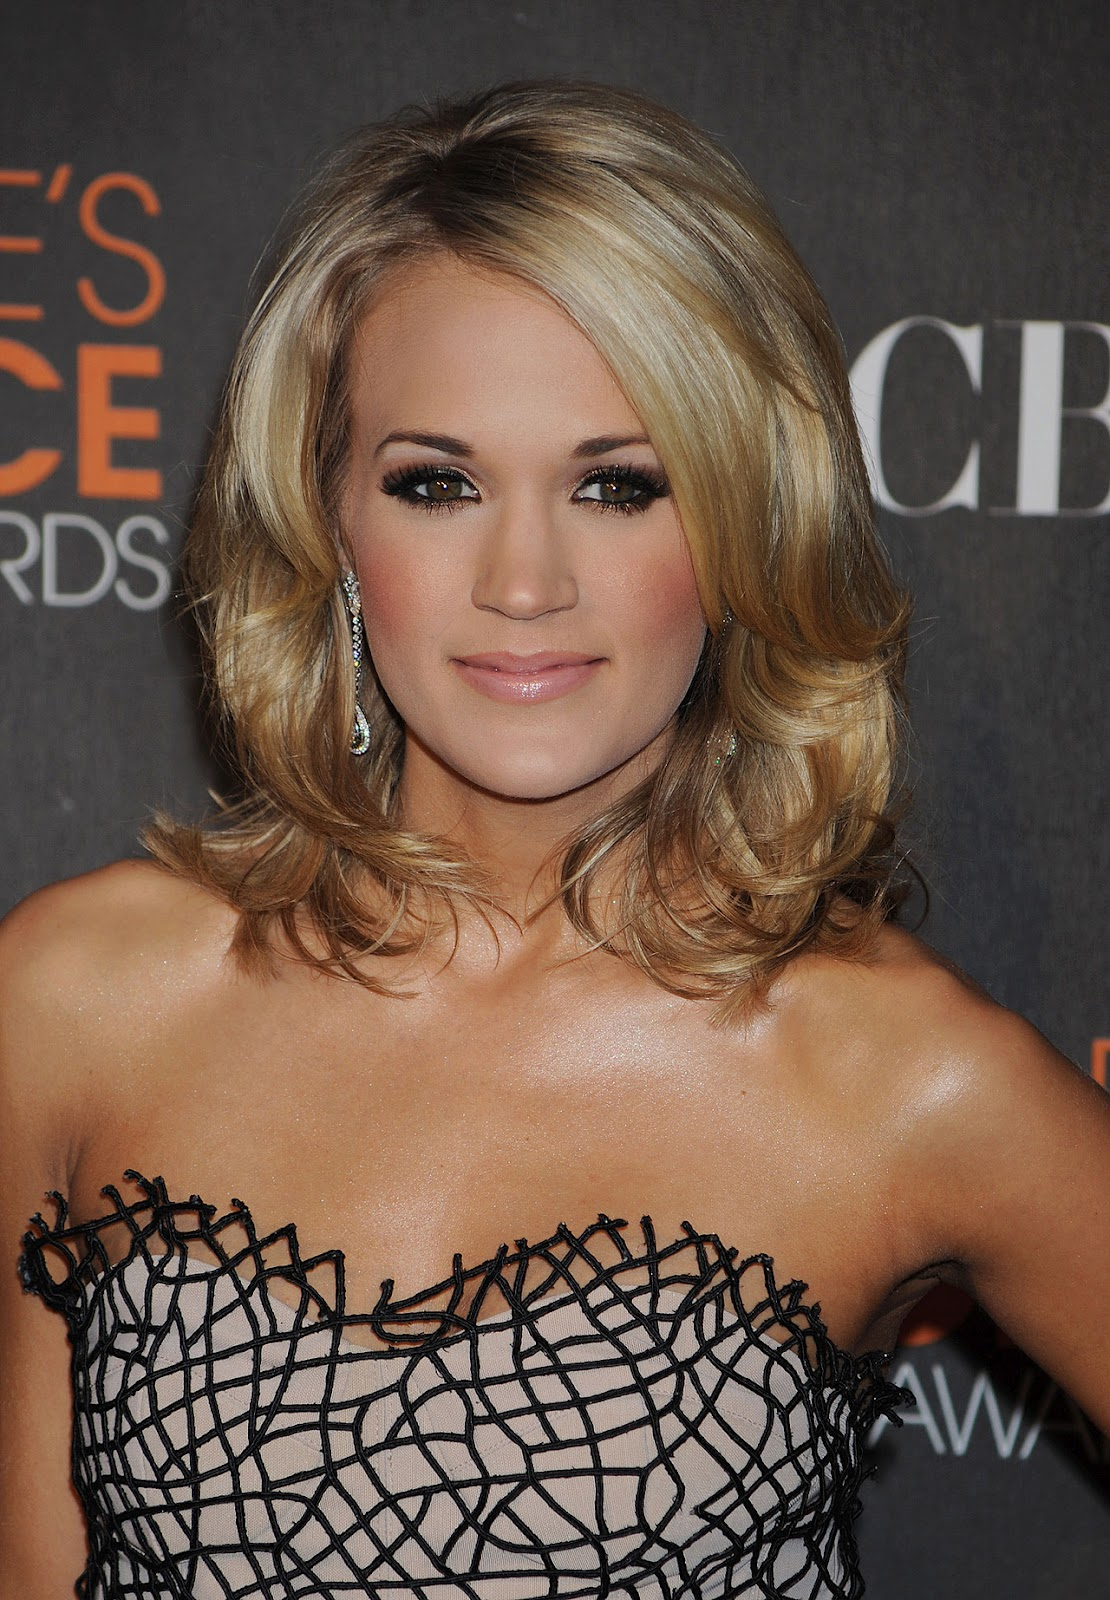 http://4.bp.blogspot.com/-6MD8COh9oWw/UEvyIWbLwiI/AAAAAAAARCk/4lGq0v-u9tg/s1600/Carrie+Underwood+Country+Beautiful.jpg